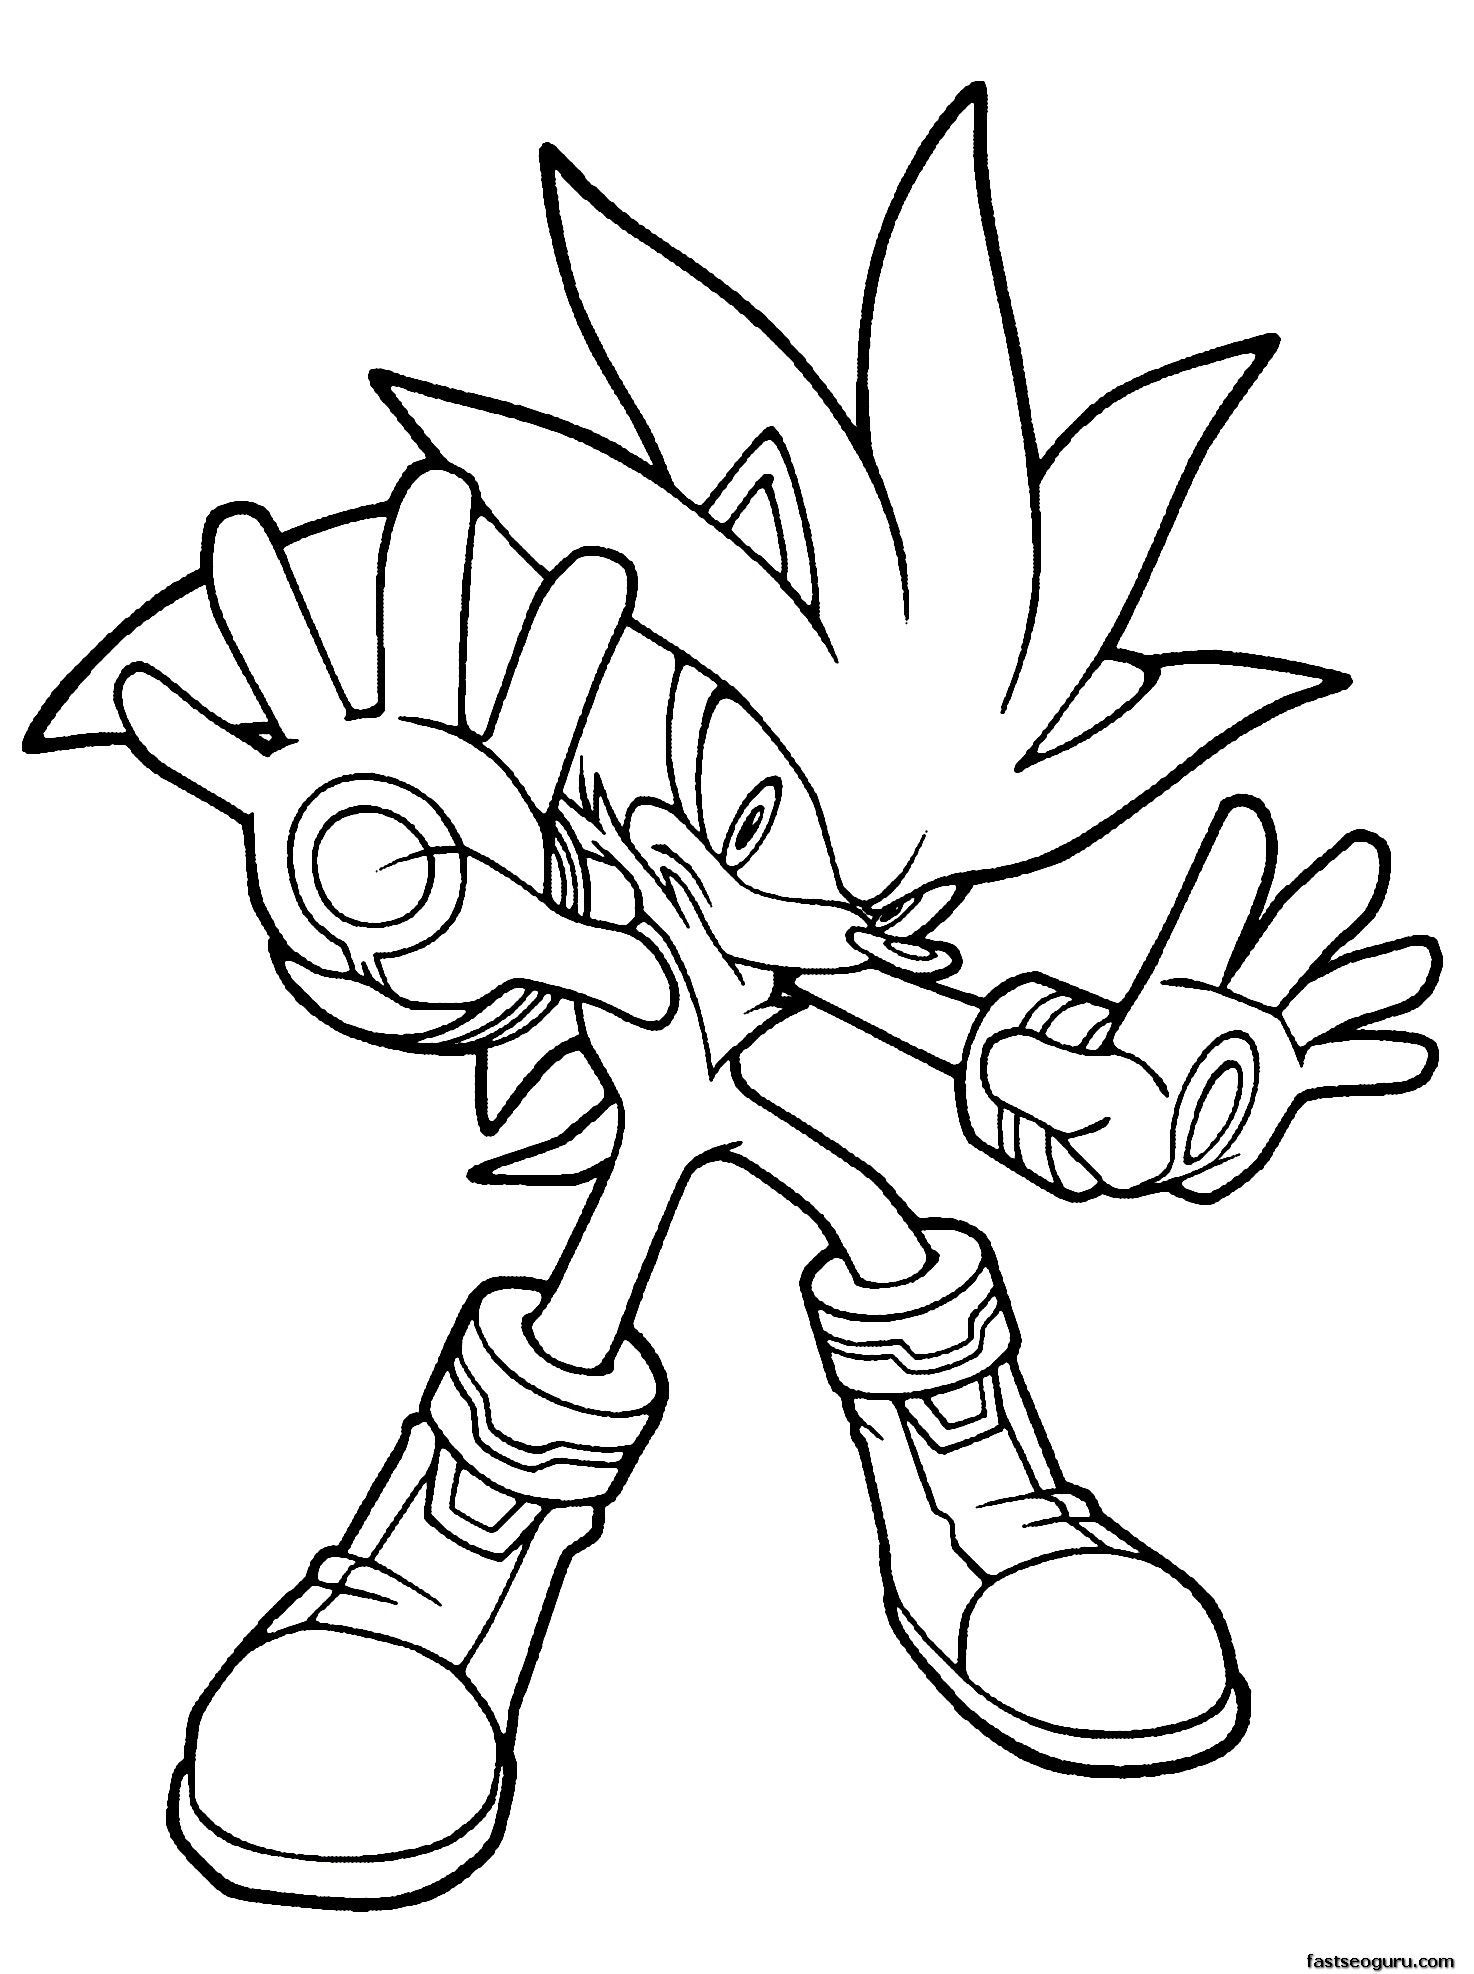 Sonic Coloring Silver Sonic Coloring Silver Sonic Shadow Silver Coloring Pages Sonic Silver Color Hedgehog Colors Cartoon Coloring Pages Cool Coloring Pages